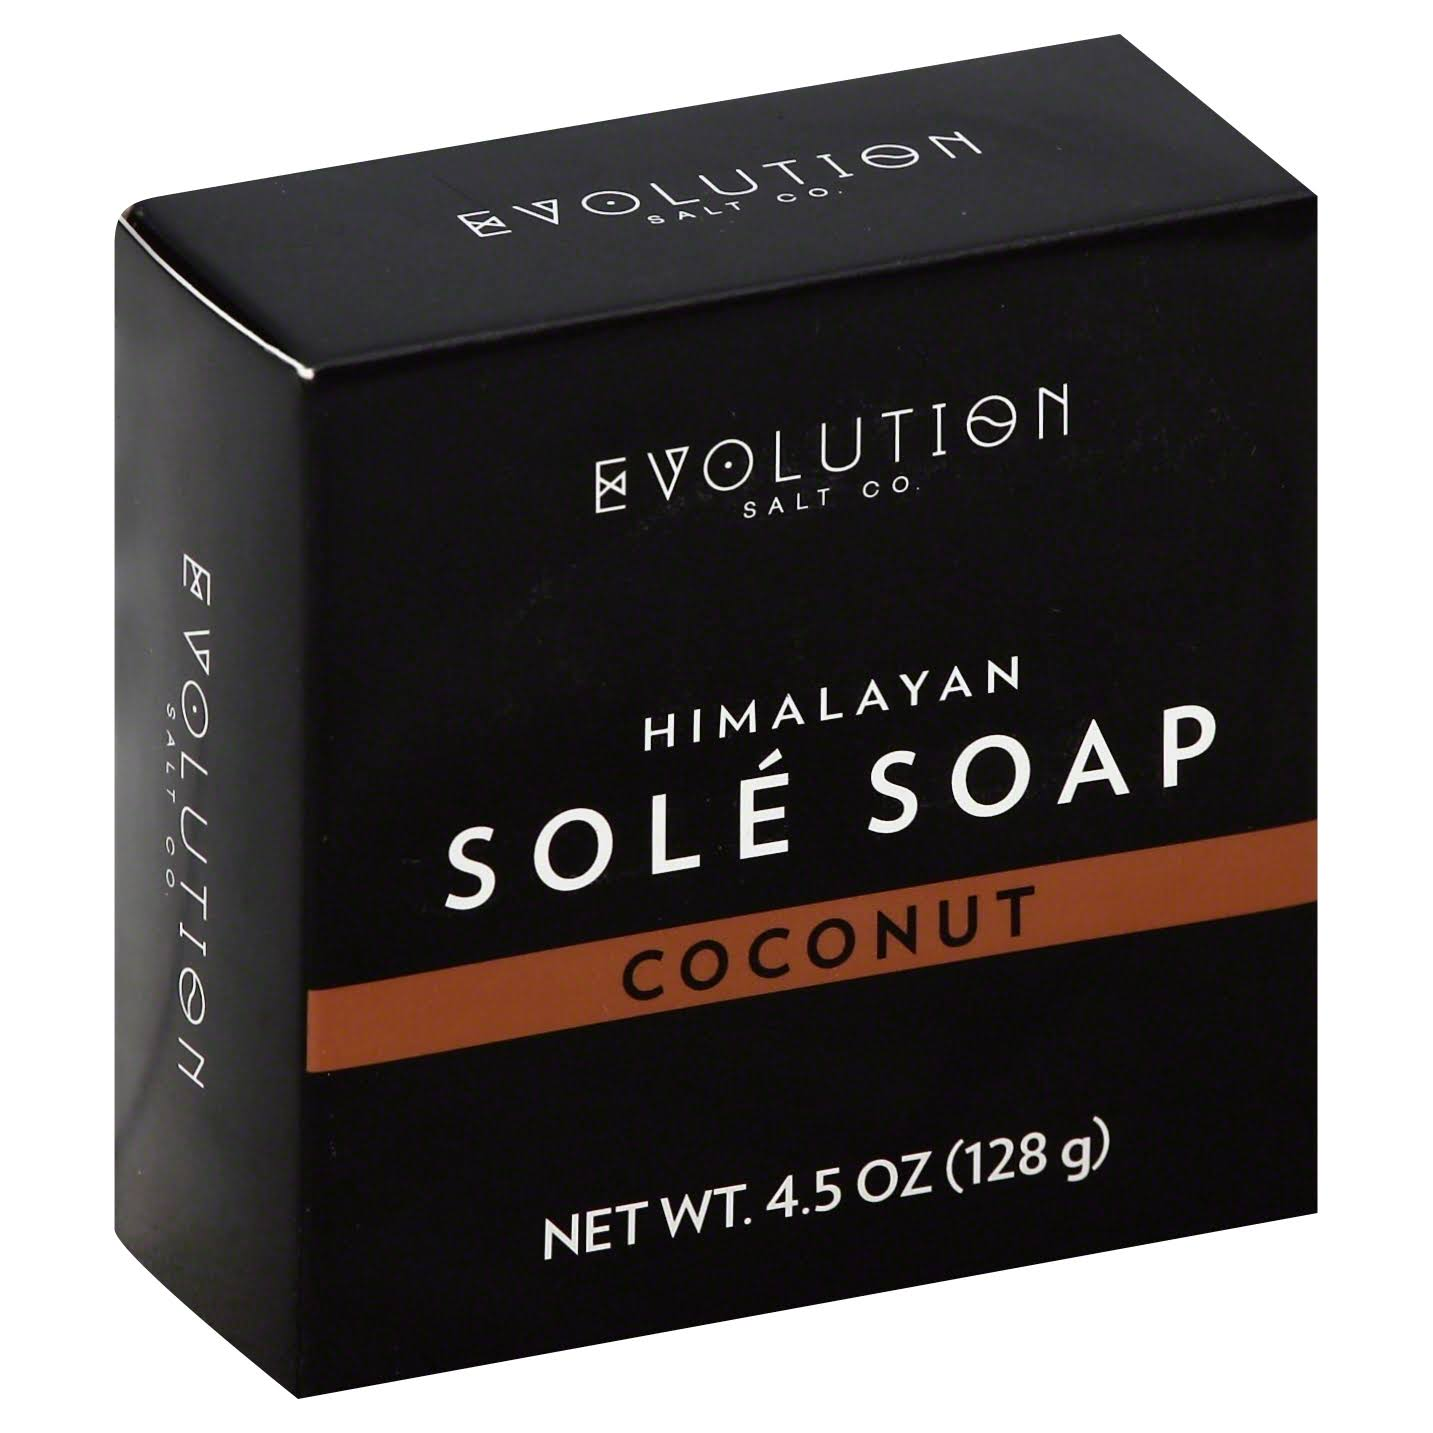 Evolution Salt Bath Soap - Coconut, 4.5 oz